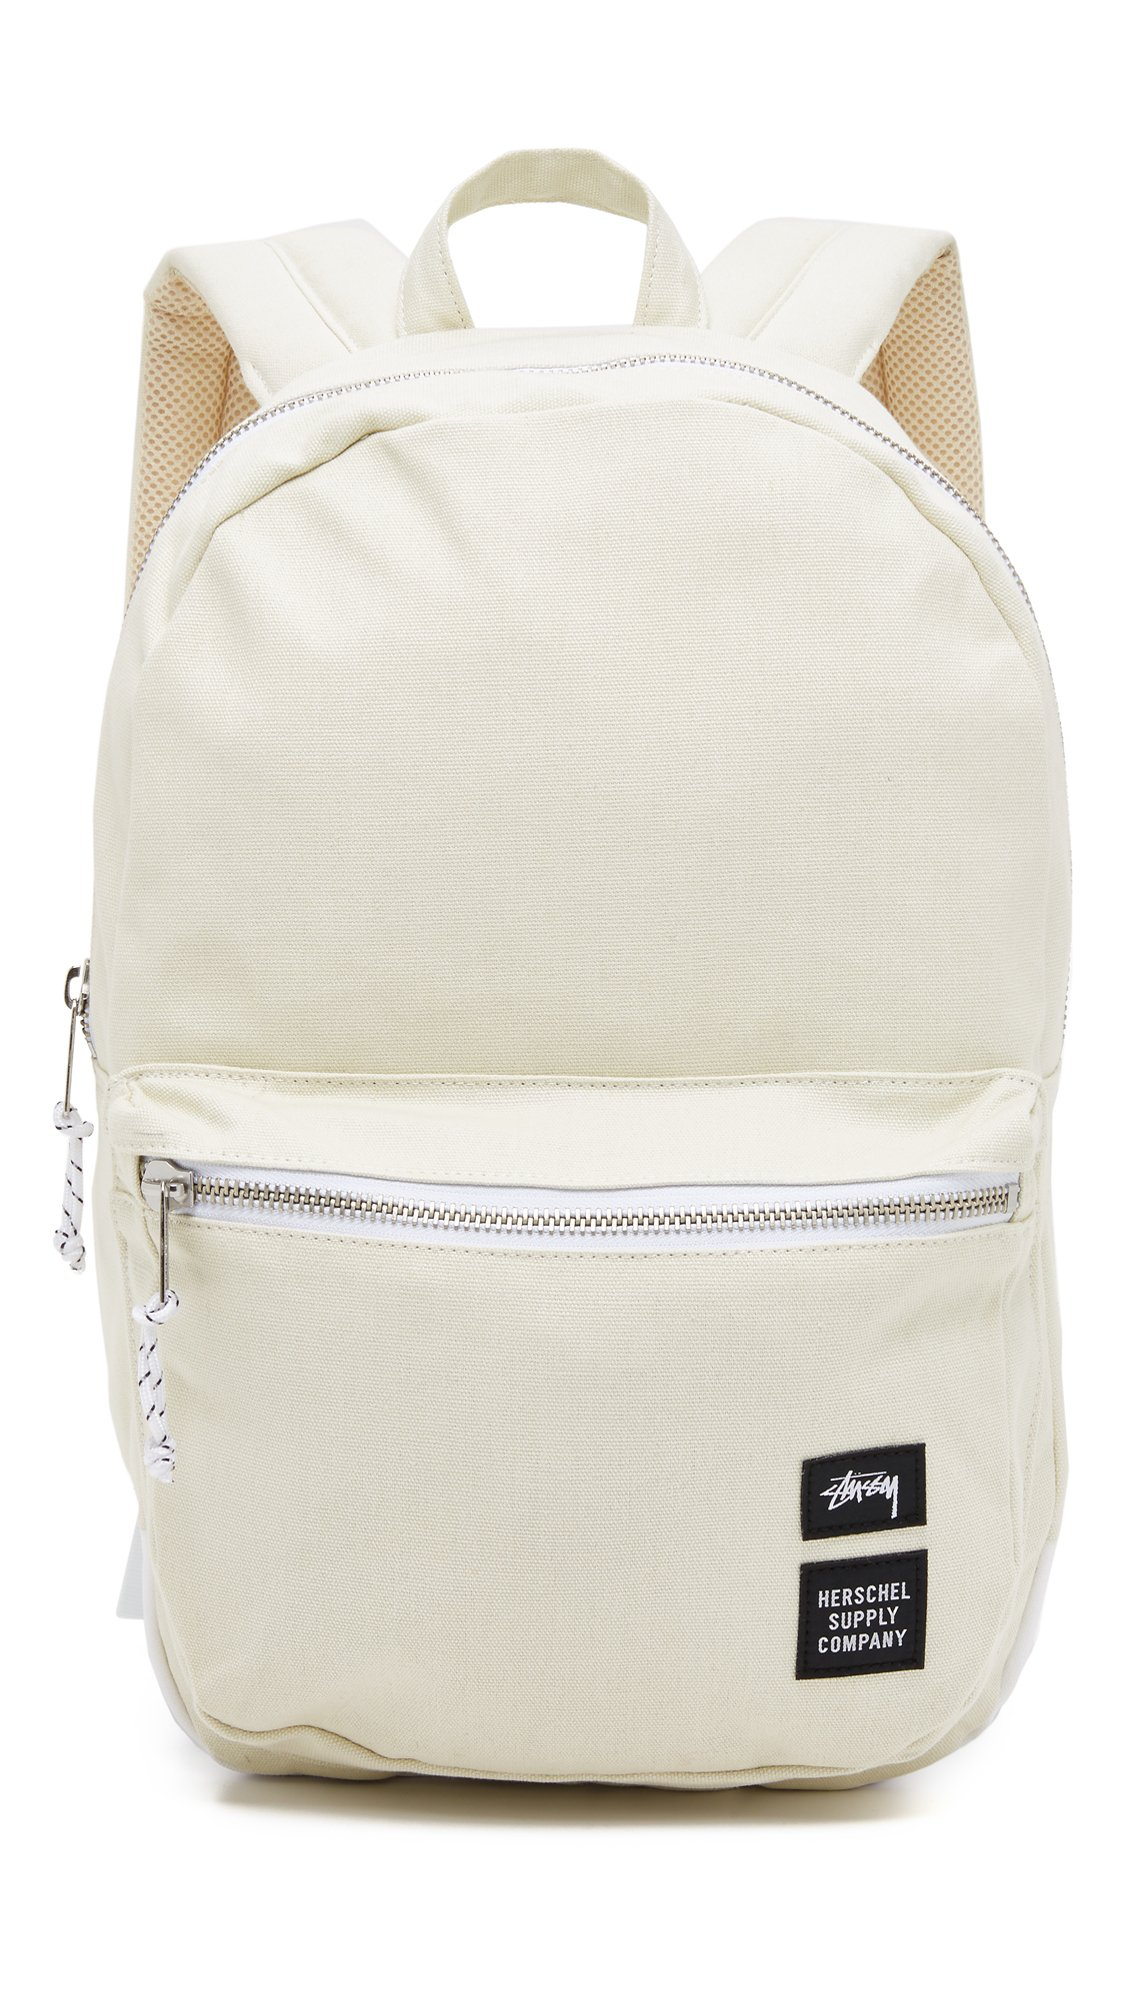 Lyst - Stussy Heavy Canvas Lawson Backpack in White for Men 9a5dfa1916be7